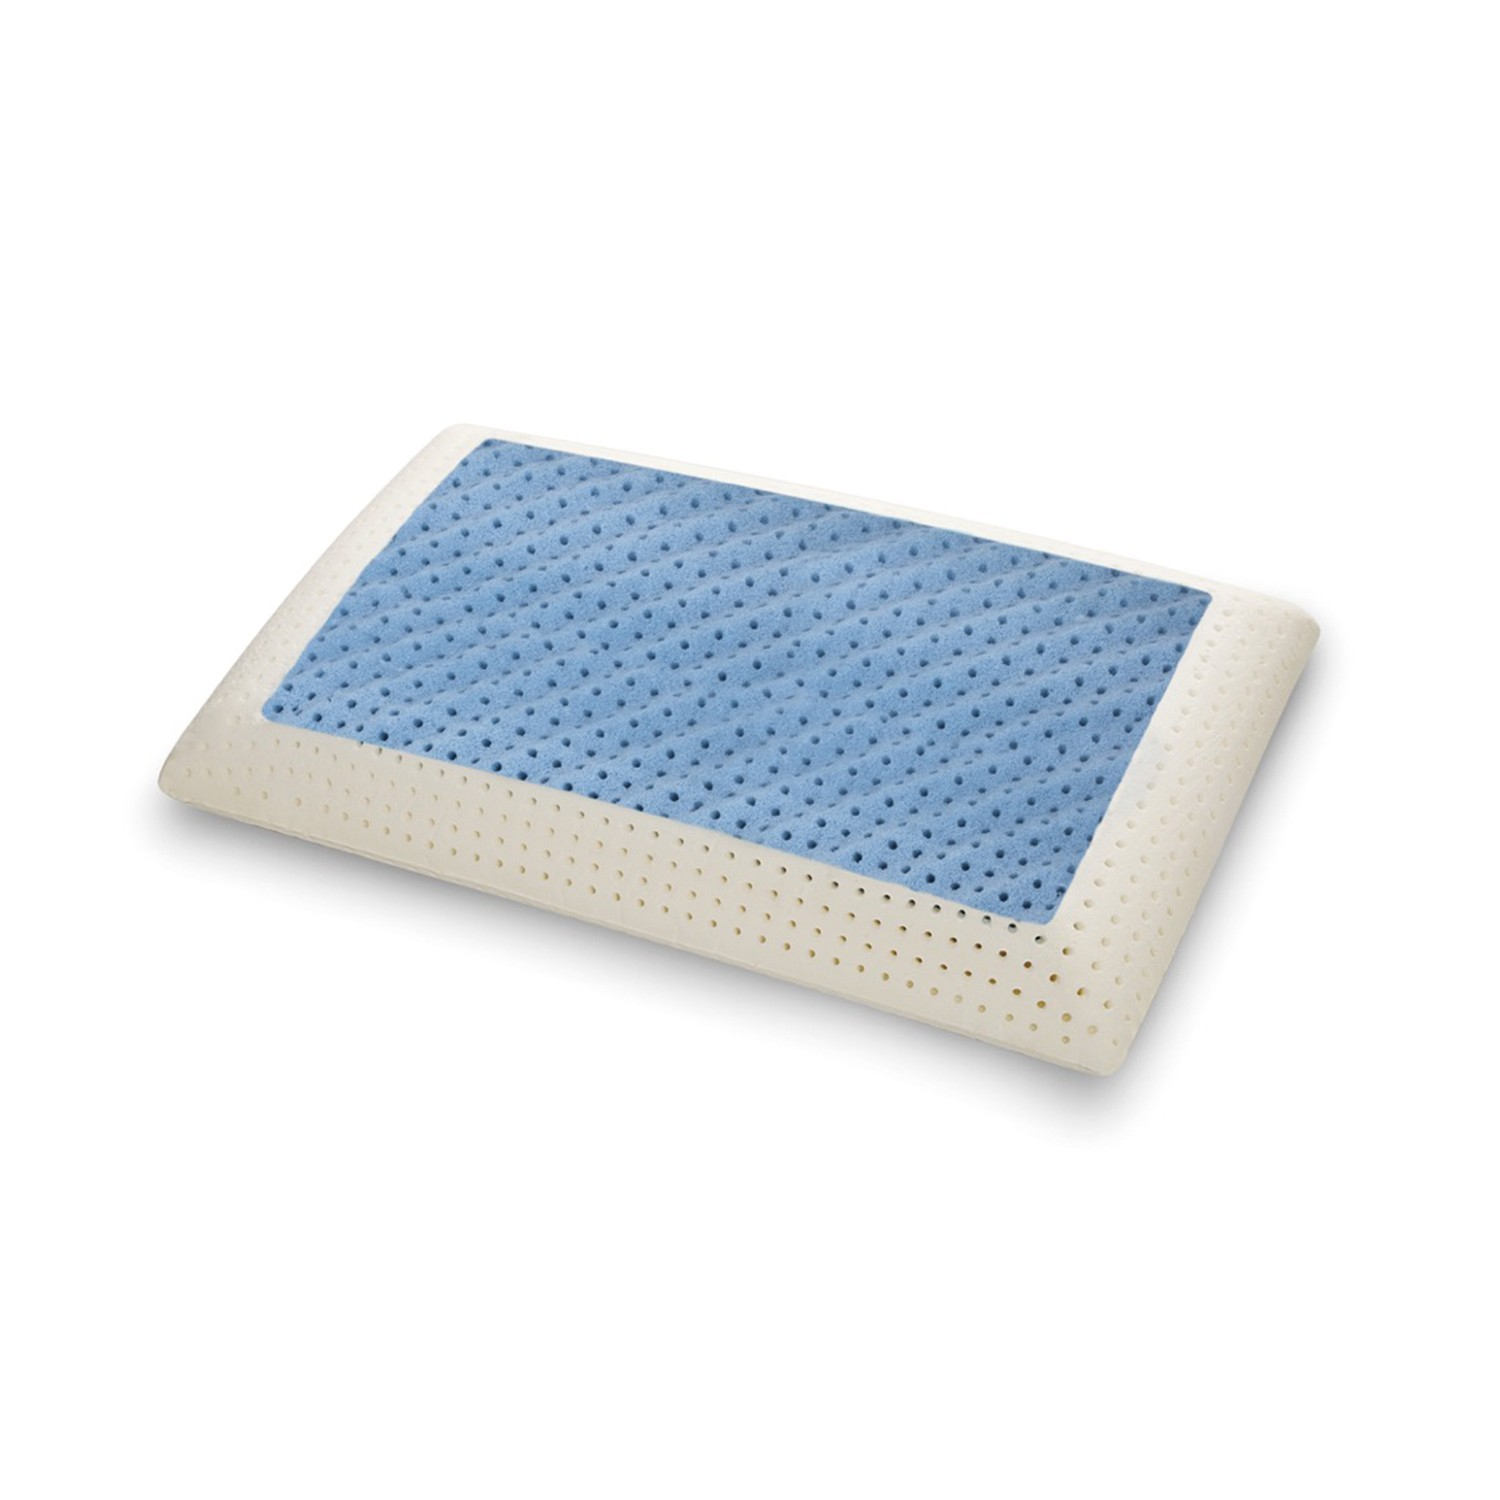 Cuscino Blue Cloud In MyMemory FRESH Memory Foam Termosensibile Altamente Traspirante Fresco